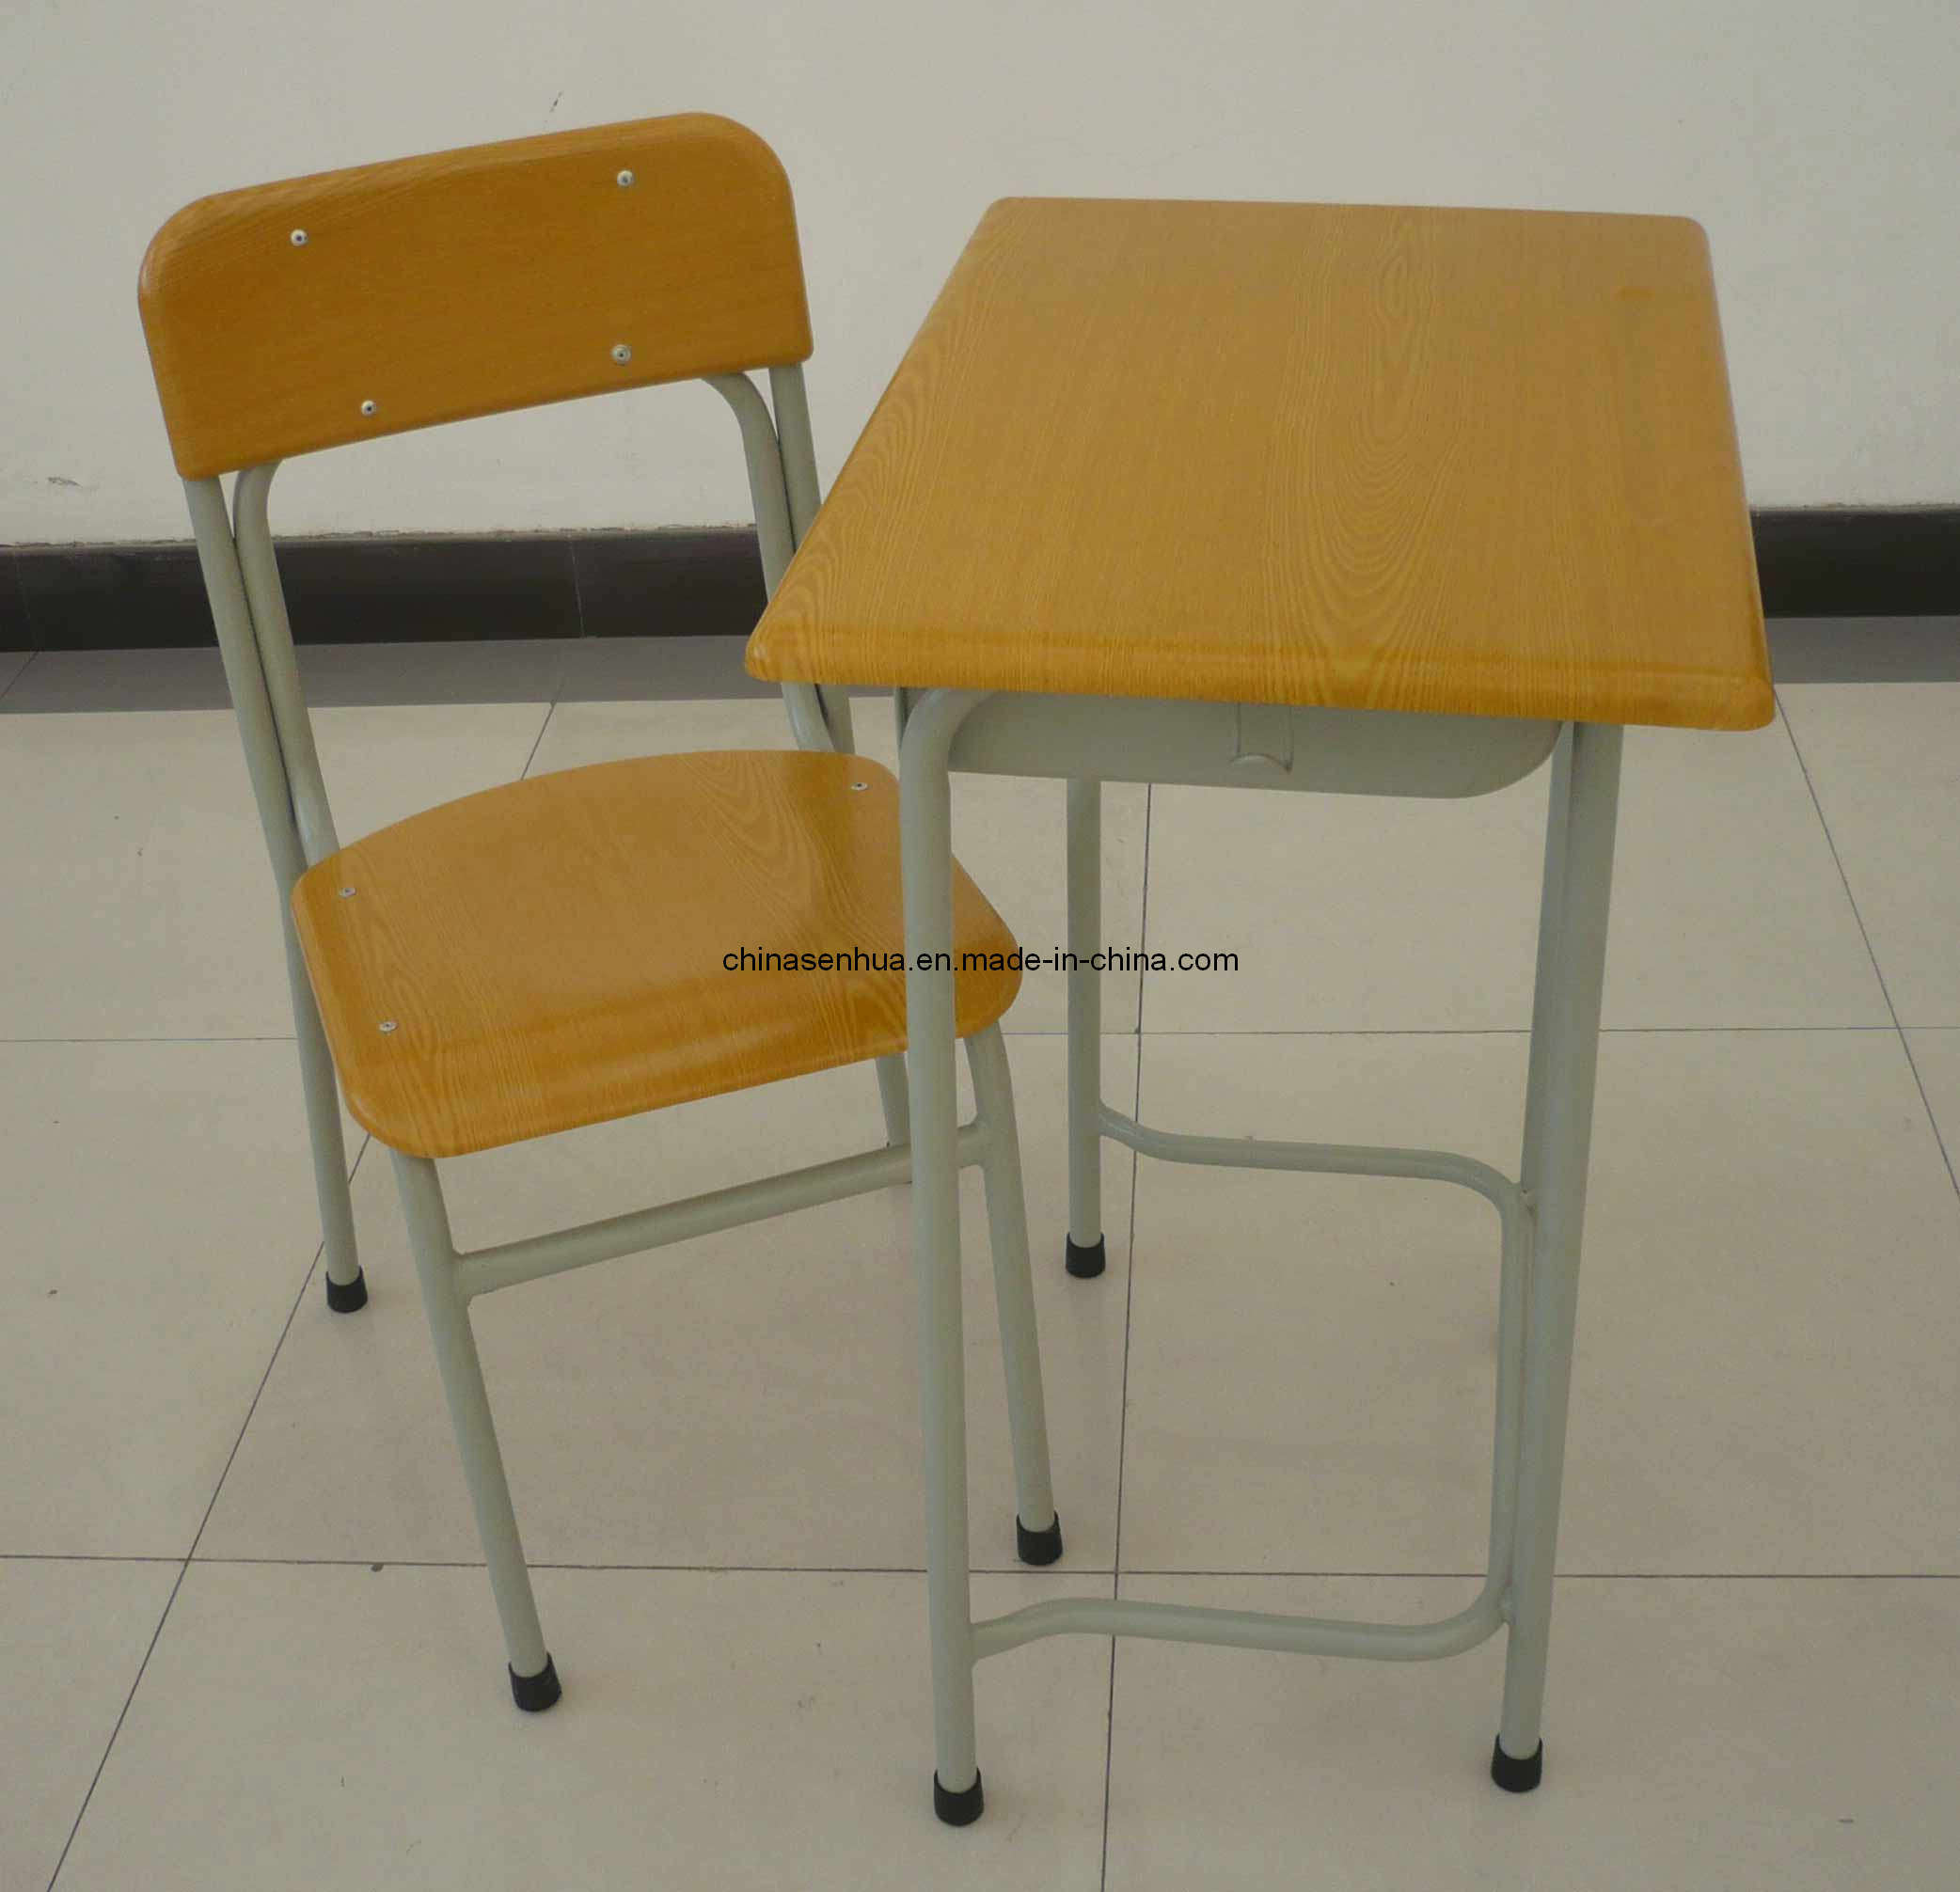 School Table And Chairs China School Desk And Chair Sh0802 China Desk And